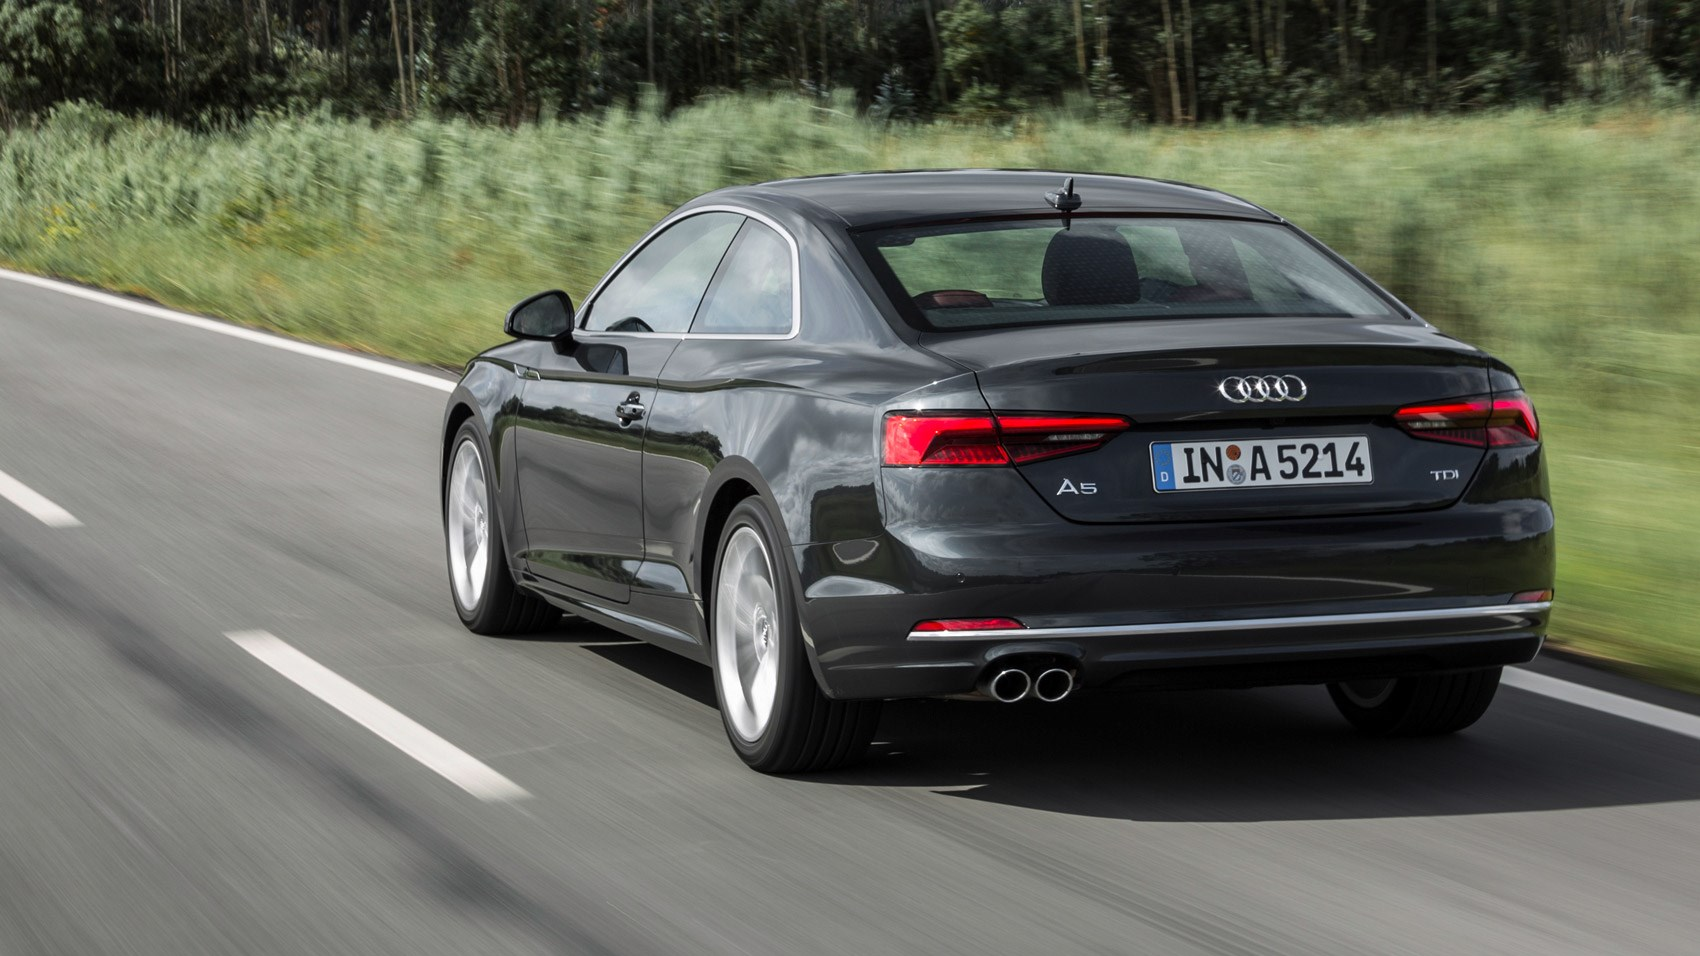 Audi A7 Lease >> Audi A5 2.0 TDI 190 coupe (2016) review | CAR Magazine